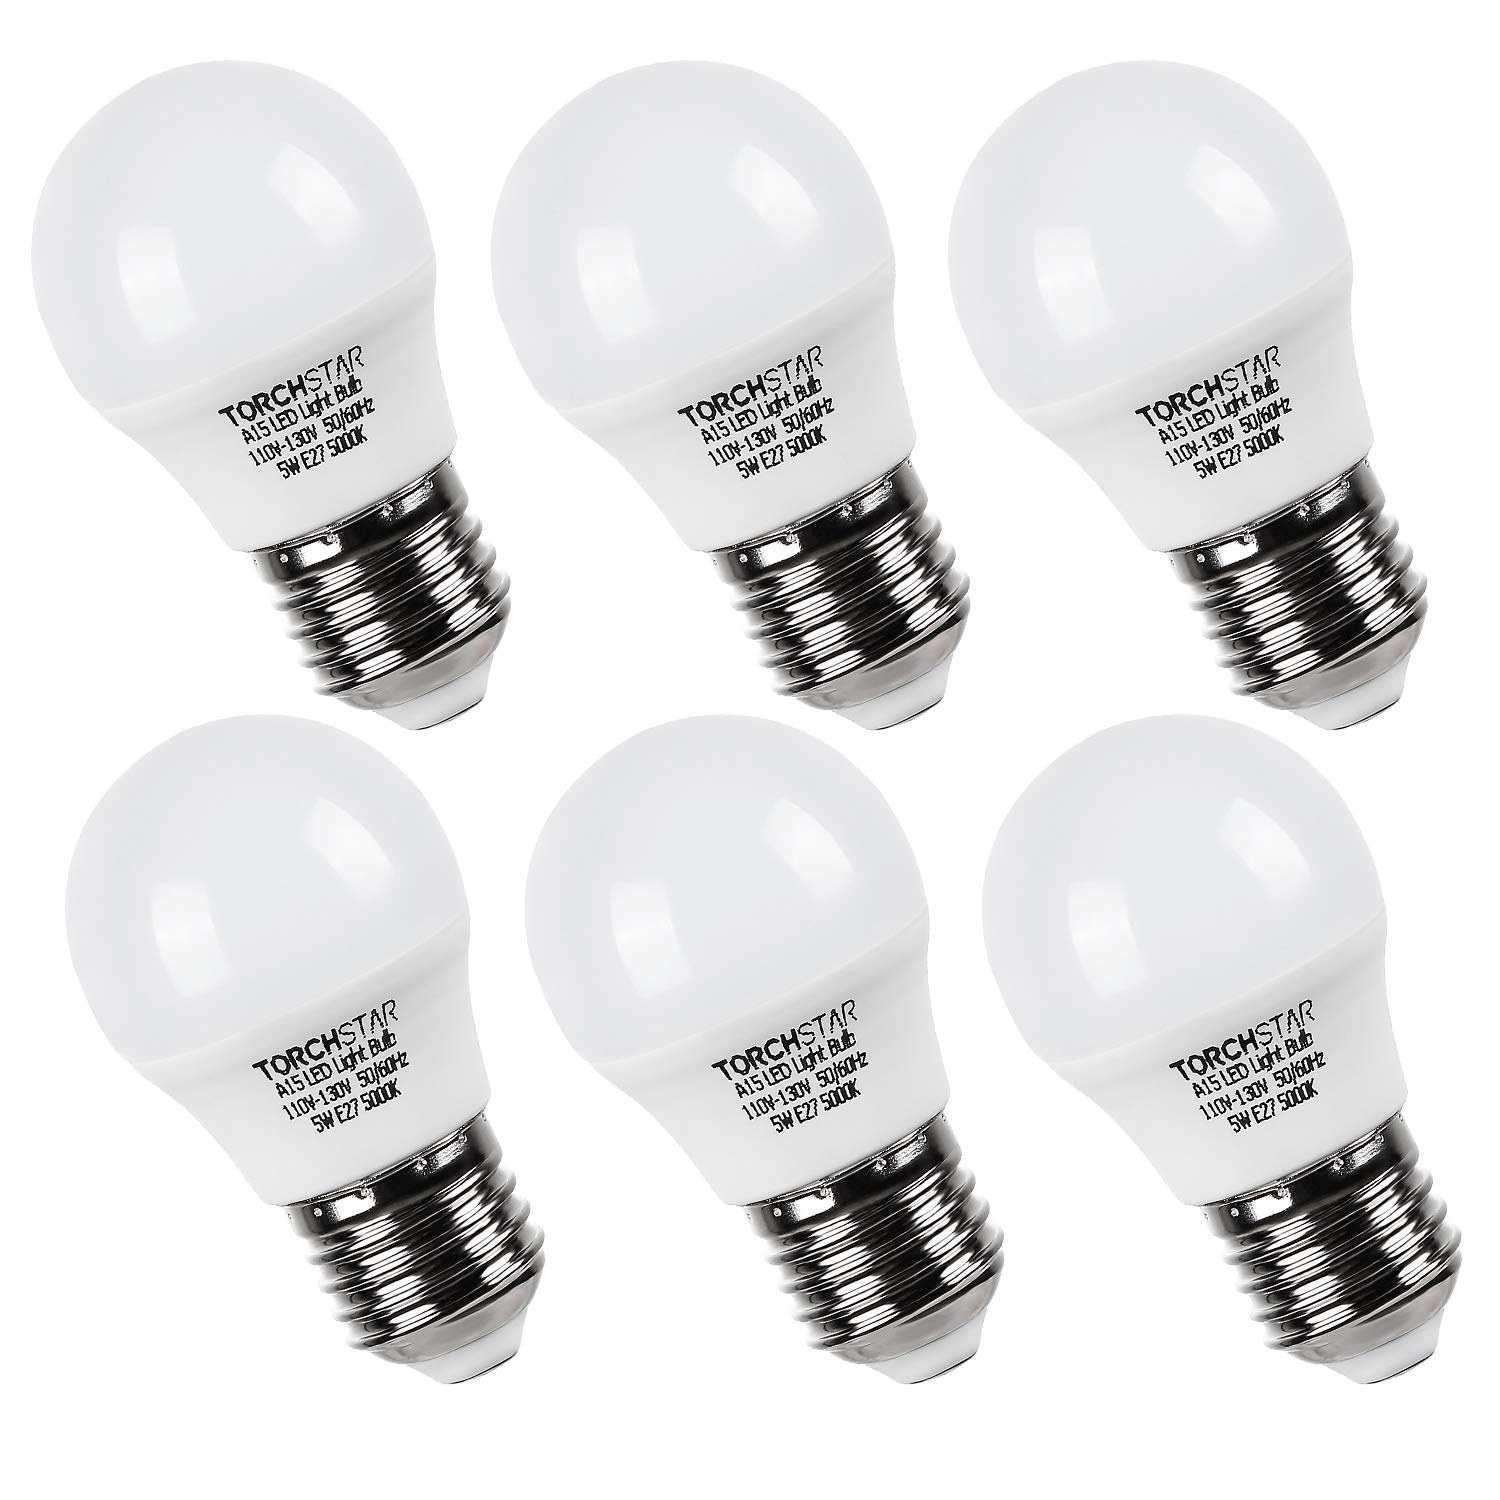 TORCHSTAR 5W A15 LED Light Bulb, 450lm 40W Equivalent, Omni Directional LED Bulb, LED Refrigerator Bulb with E26/E27 Medium Base, 5000K Daylight, Pack of 6